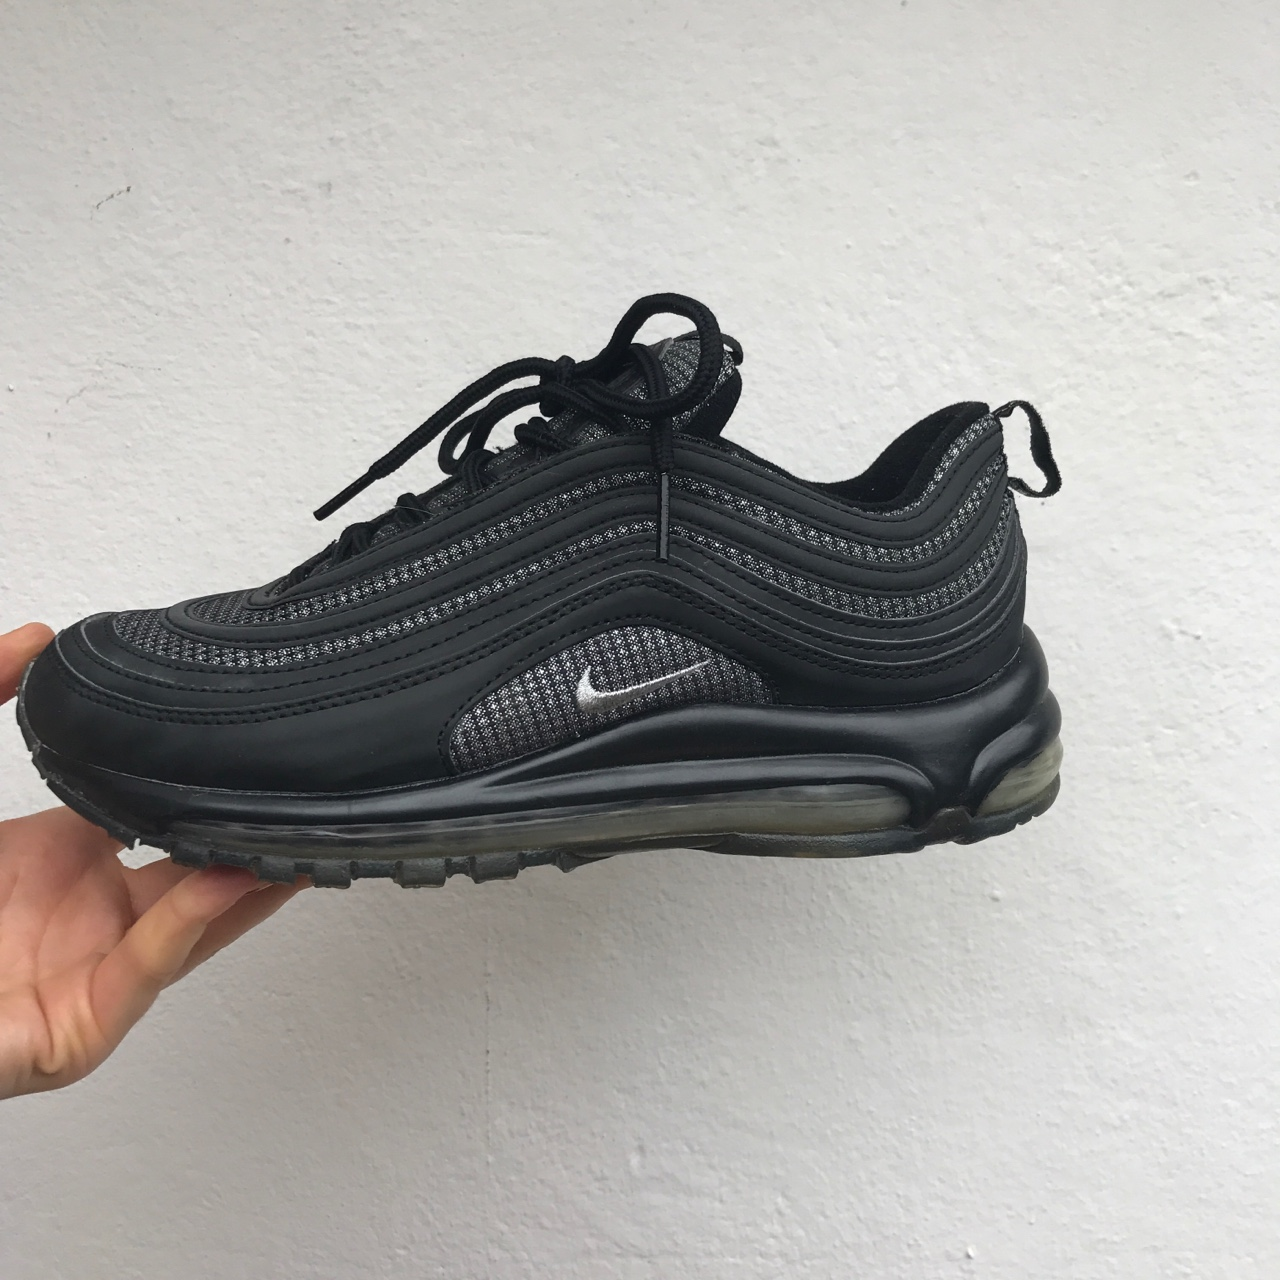 Nike air max 97 black reflective shiny glitter Depop